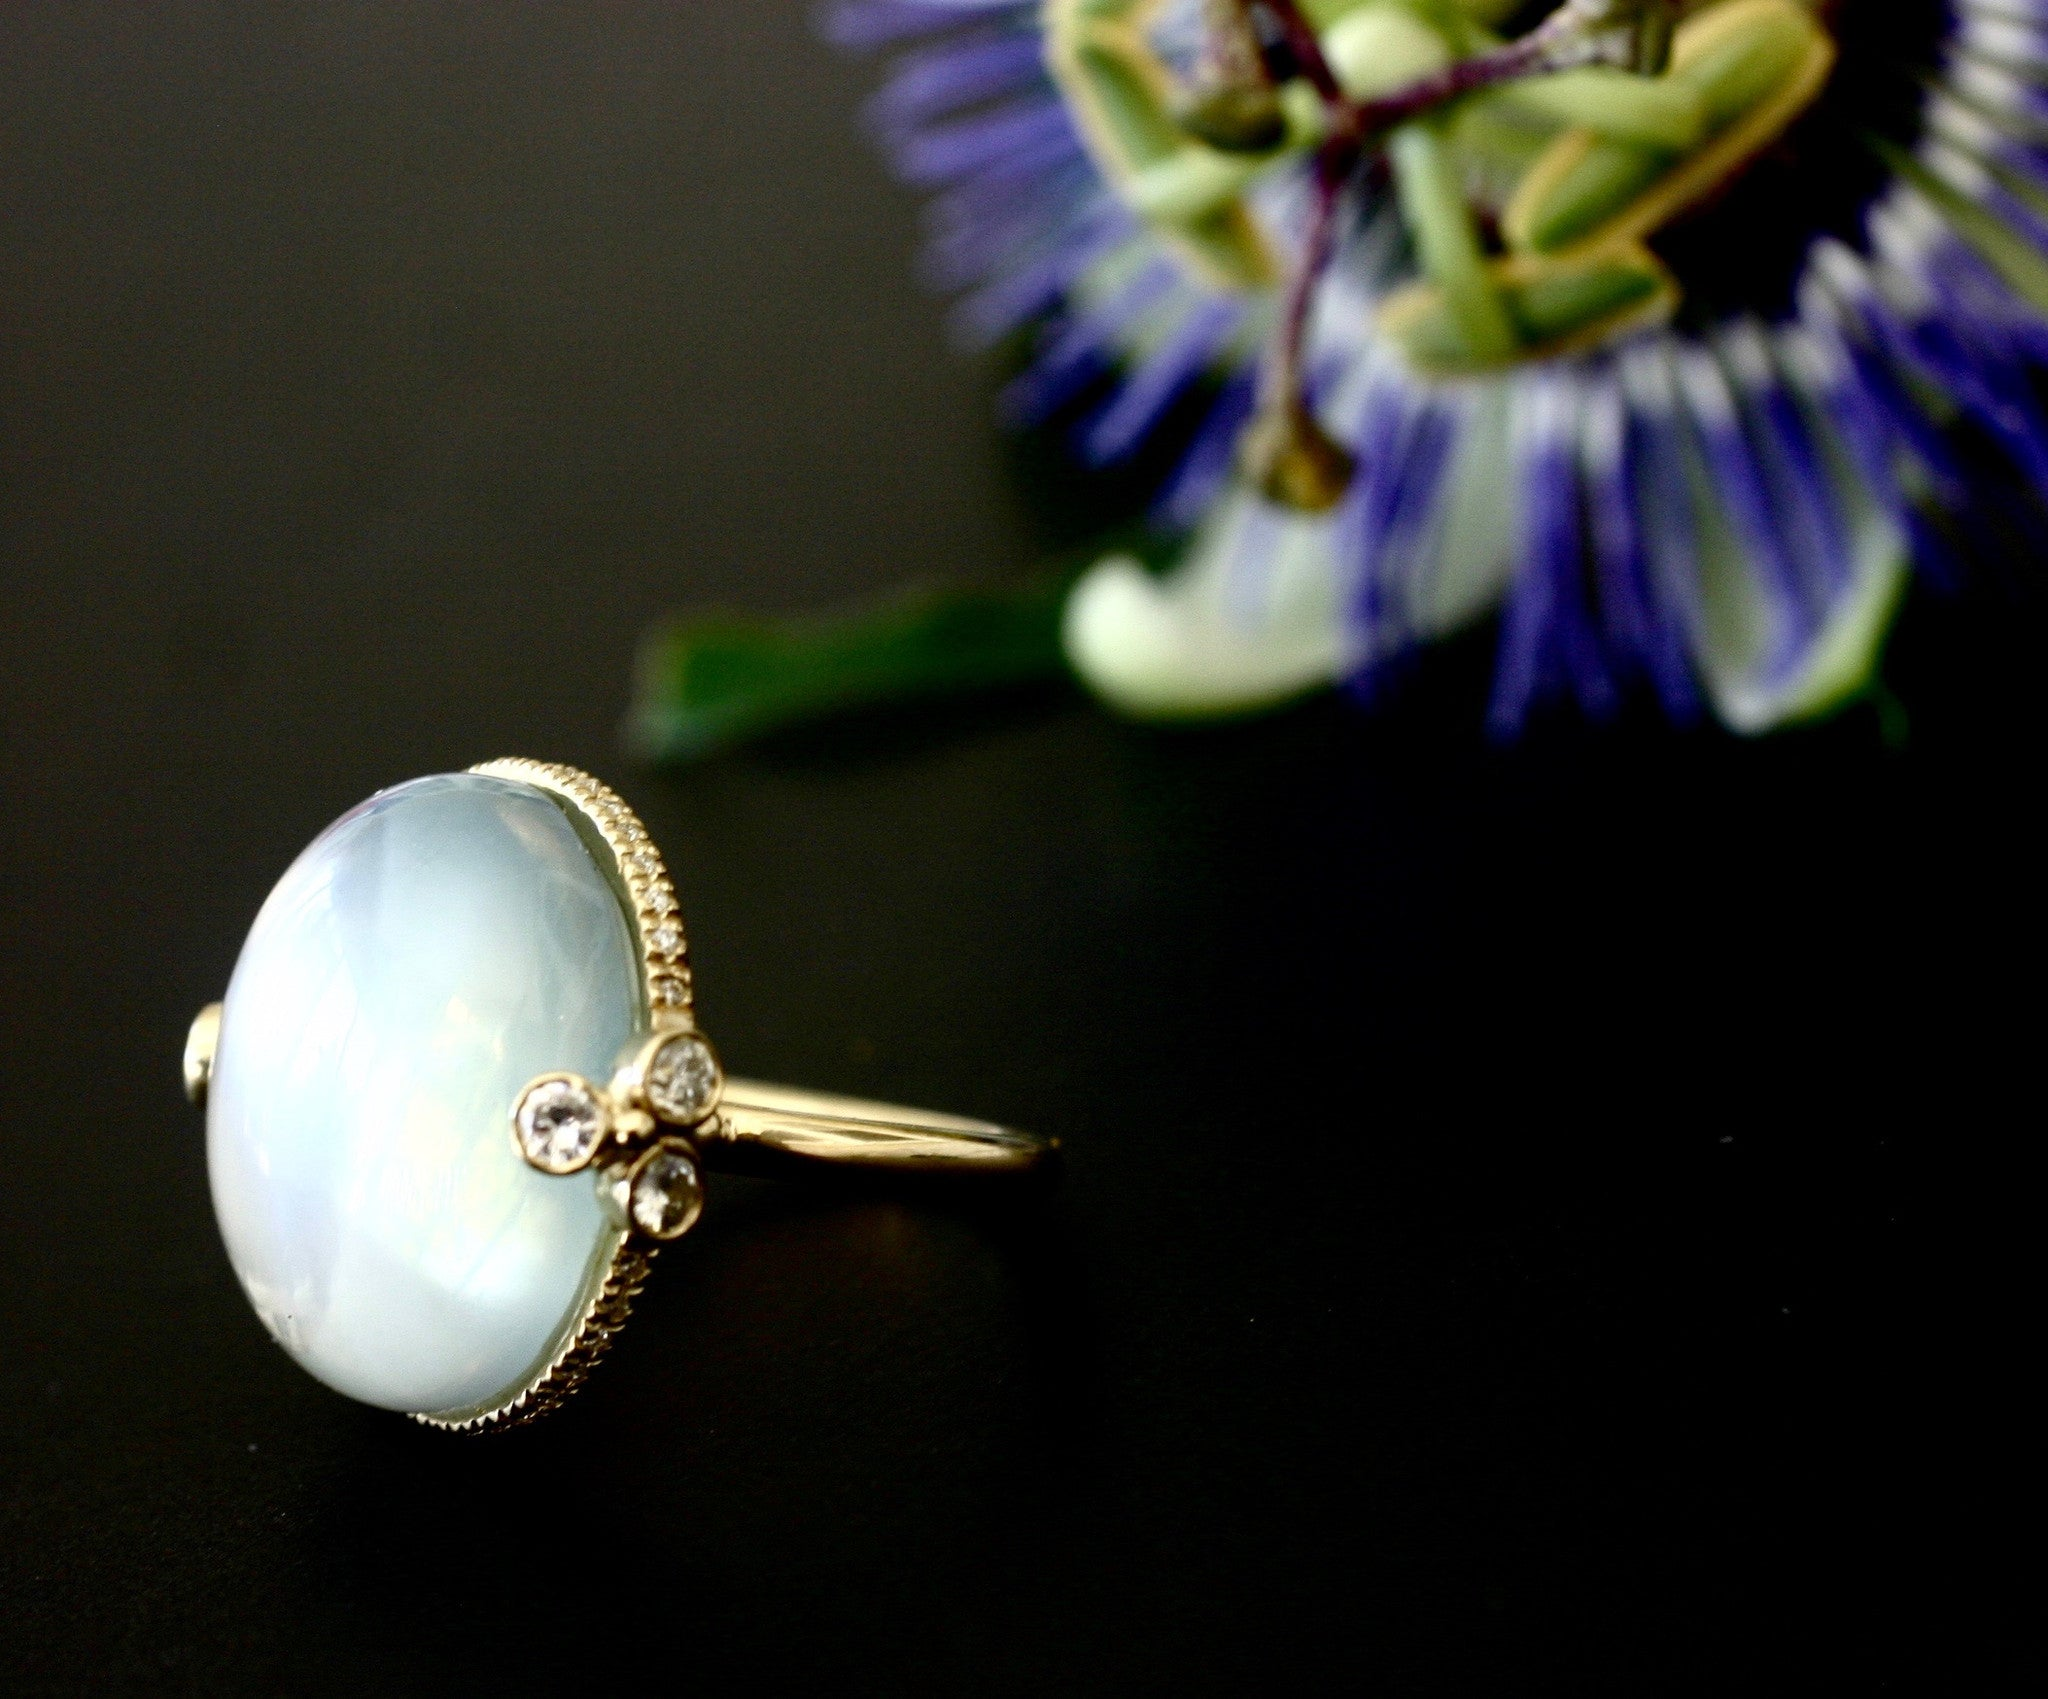 18k Royal Gold ring with Green Moonstone and Diamond